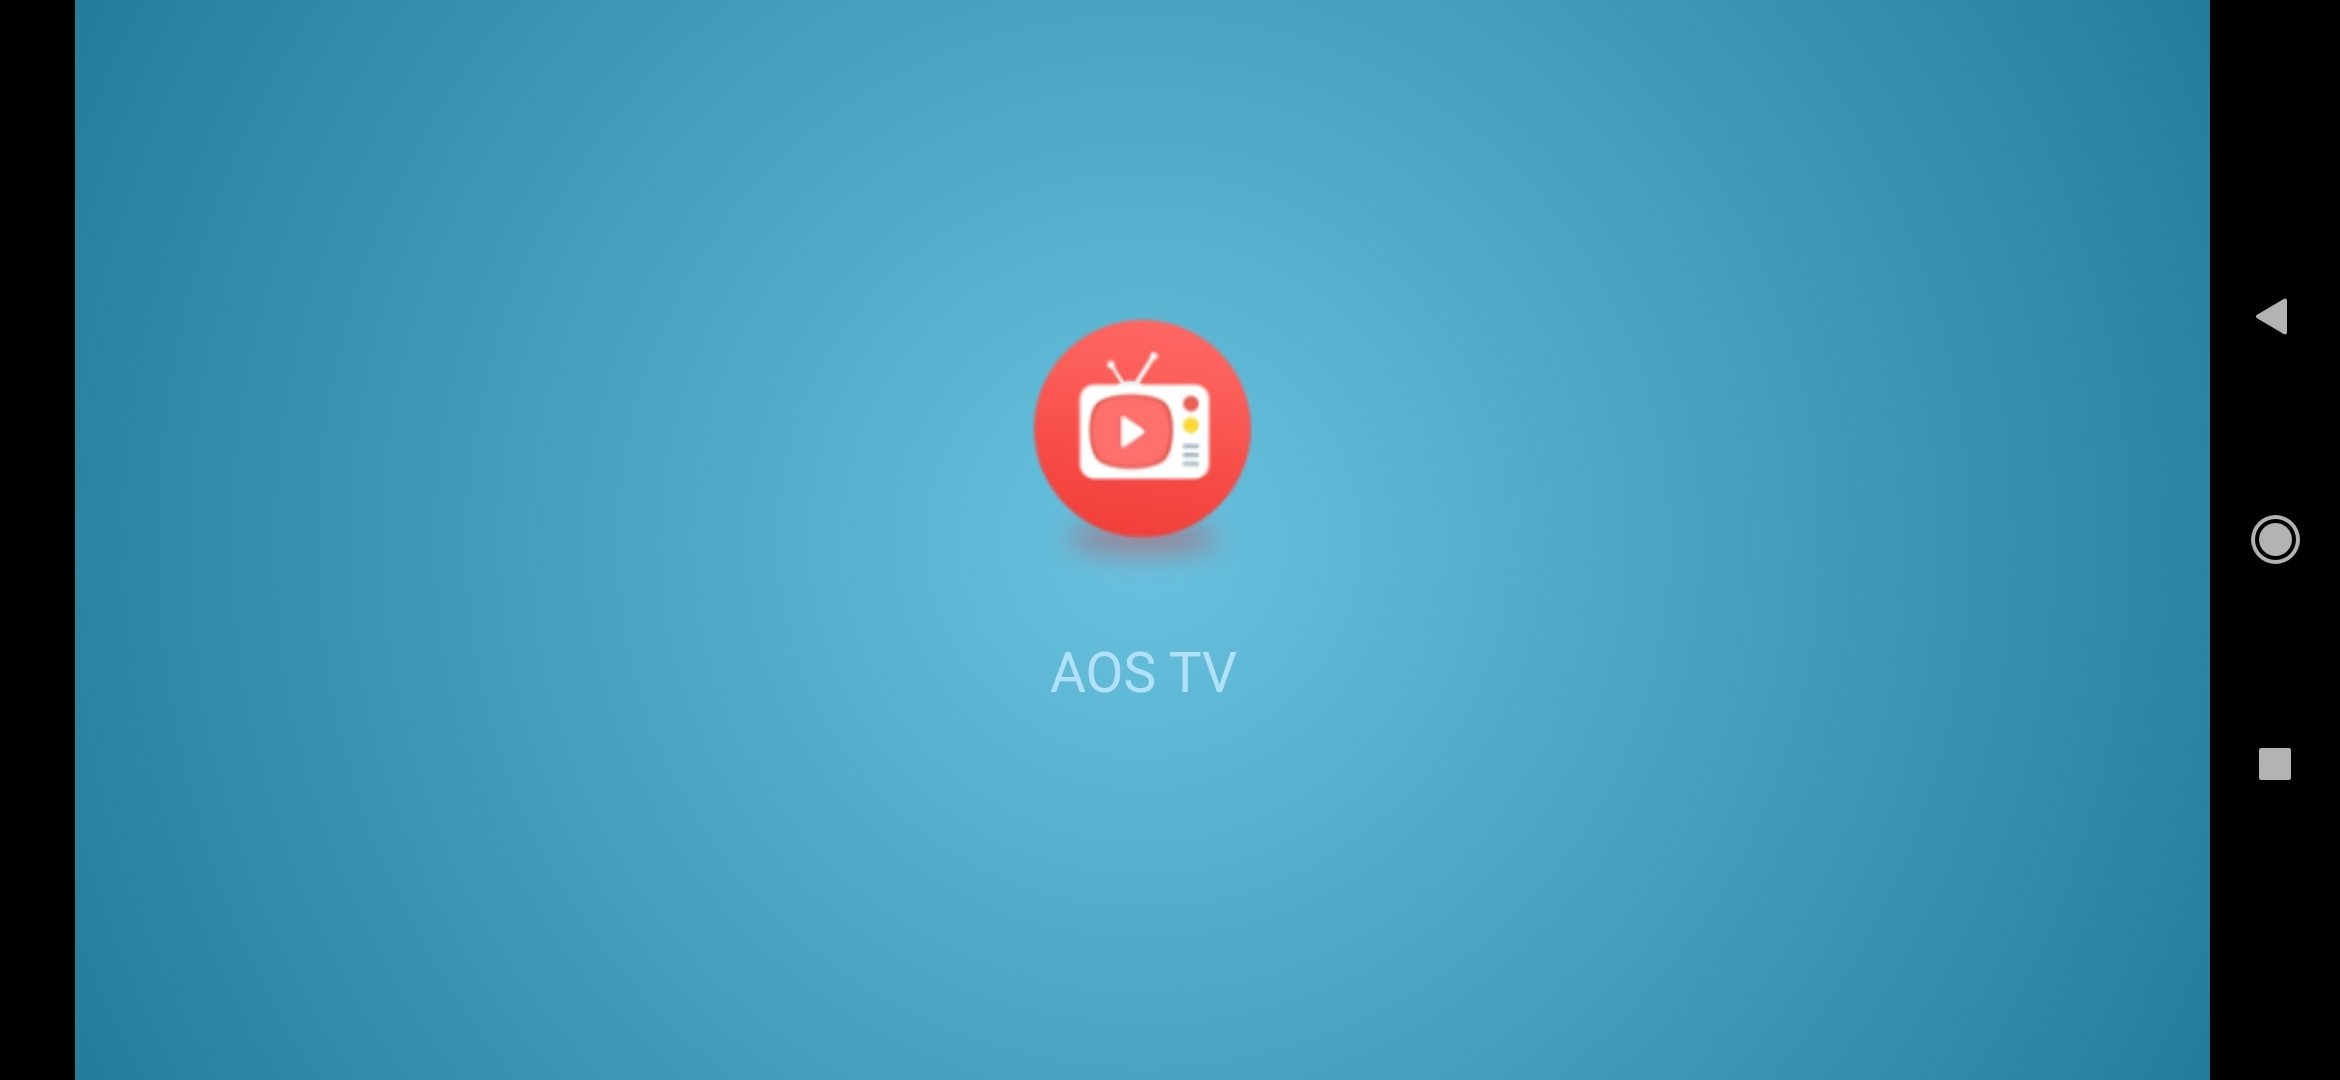 AOS TV 16 3 2 - Download for Android APK Free